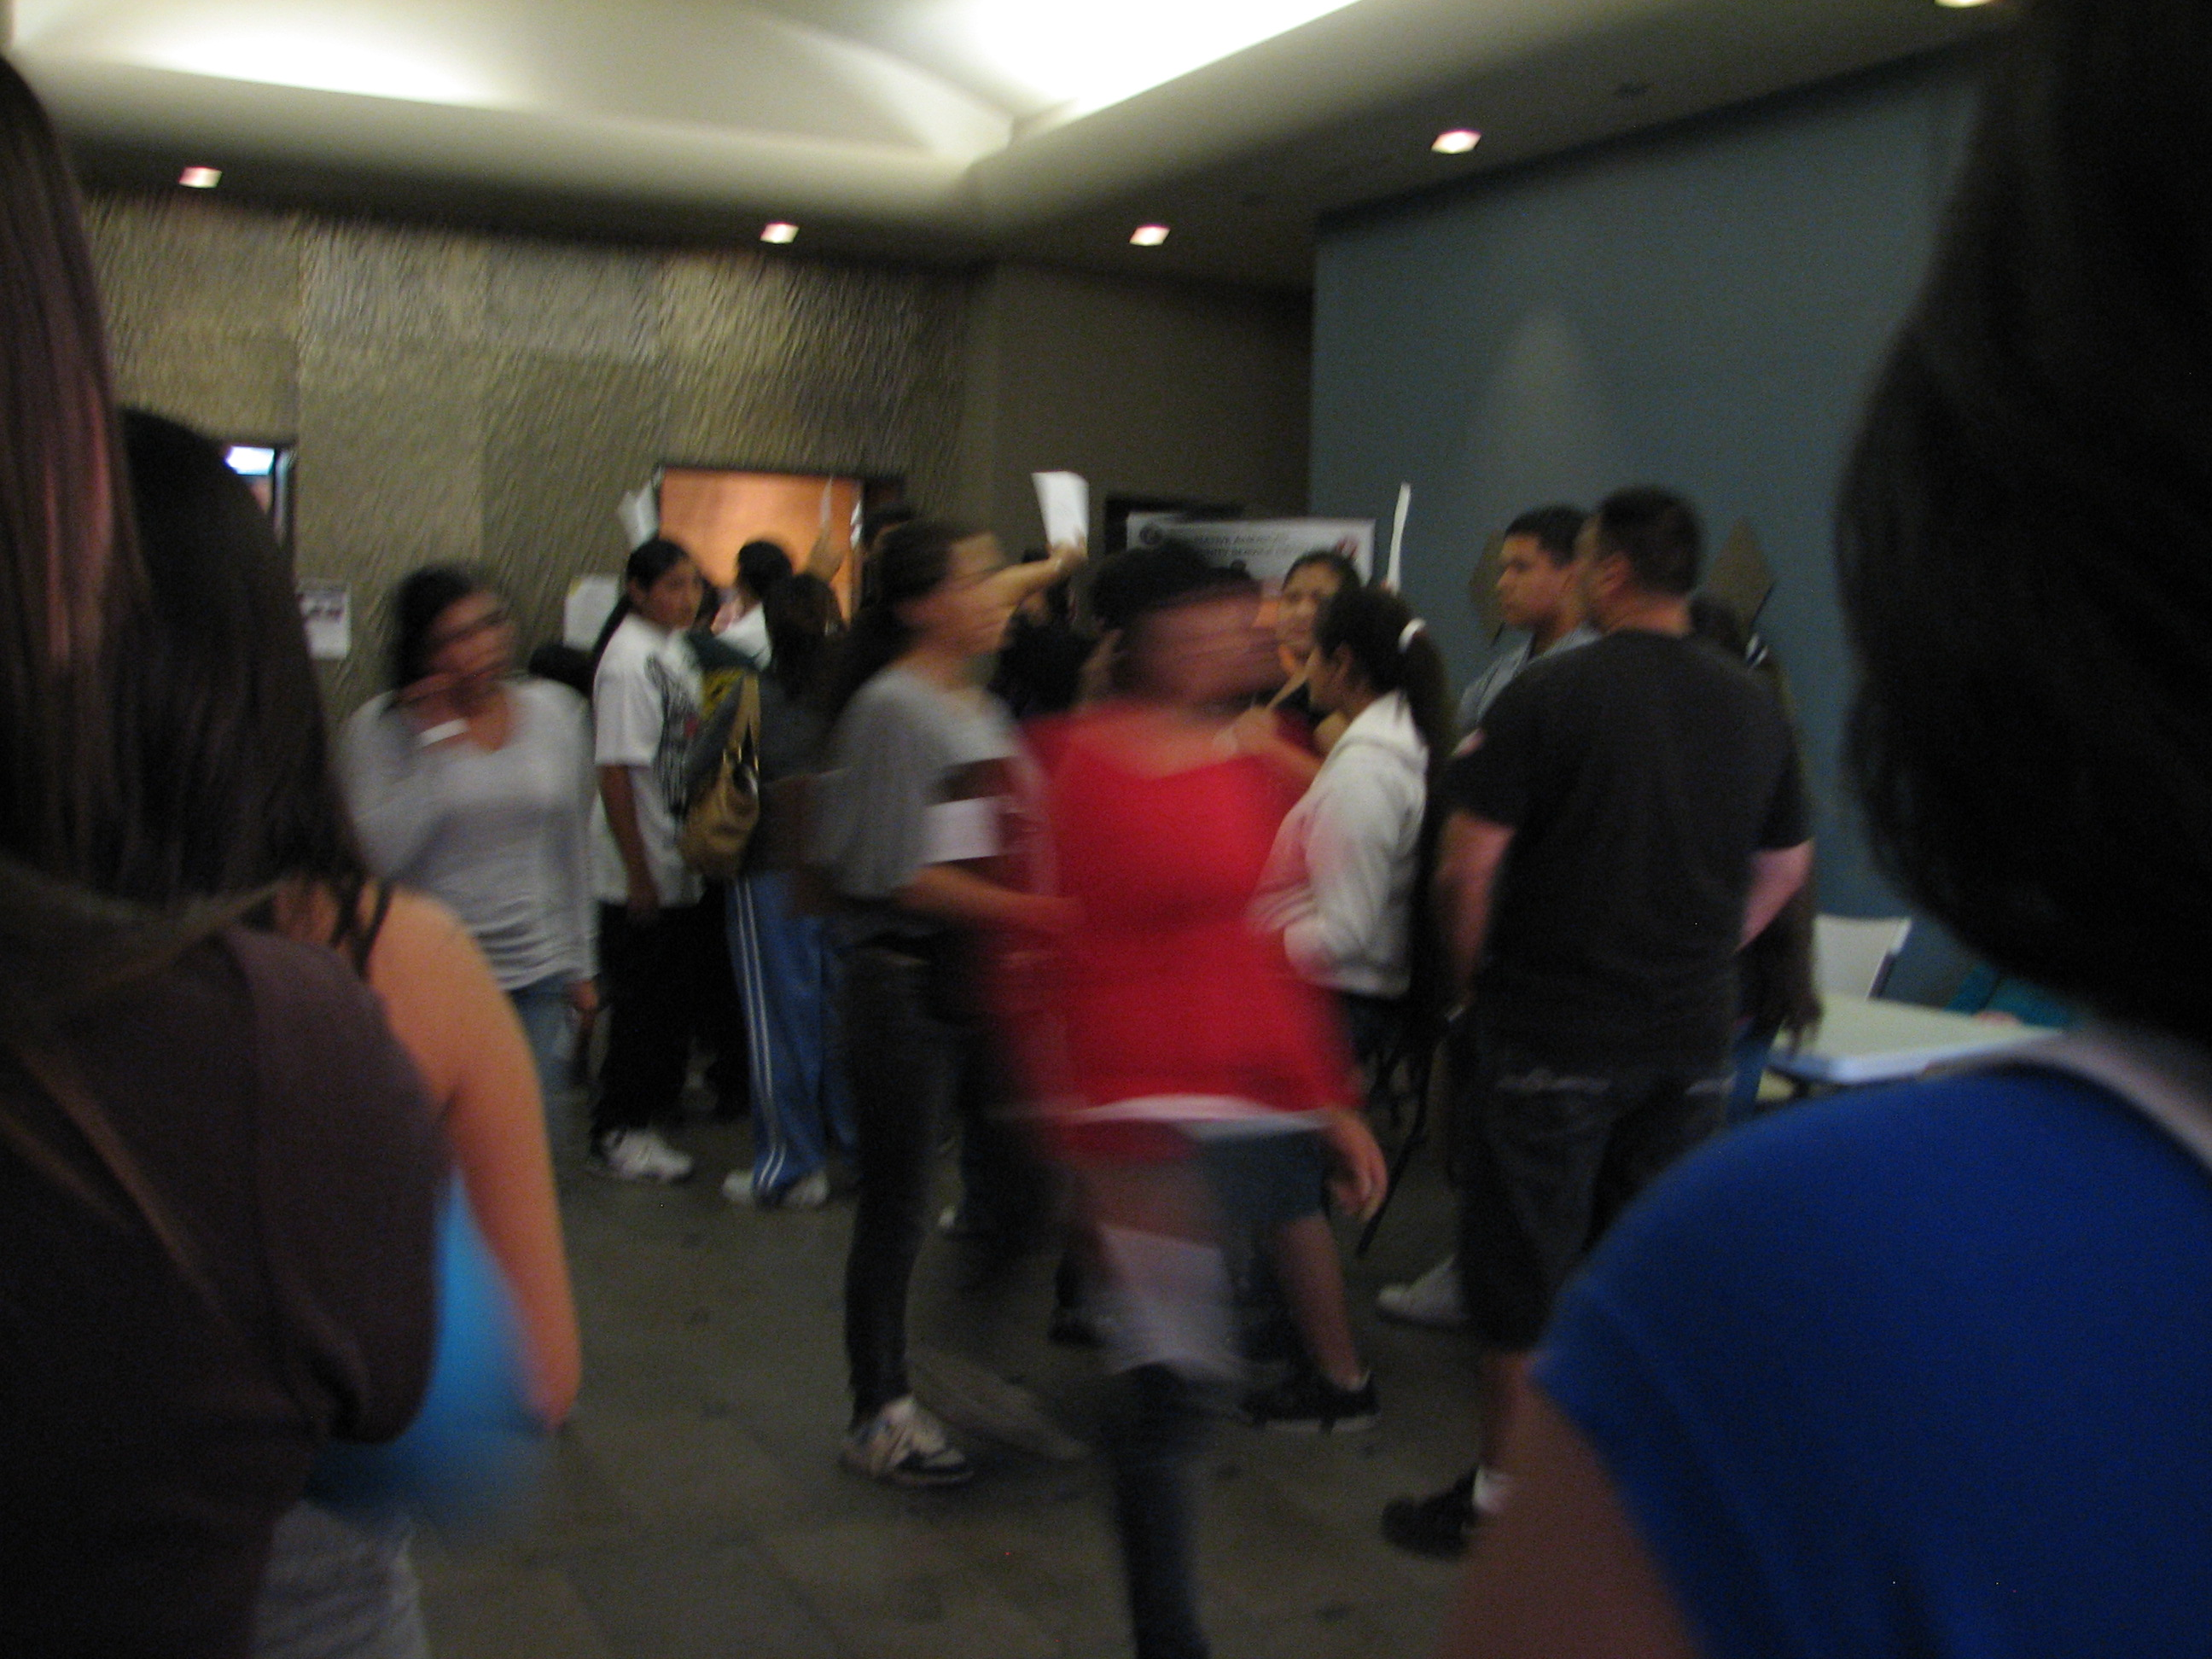 Shot of the lobby I was able to get when the crowd momentarily parted.